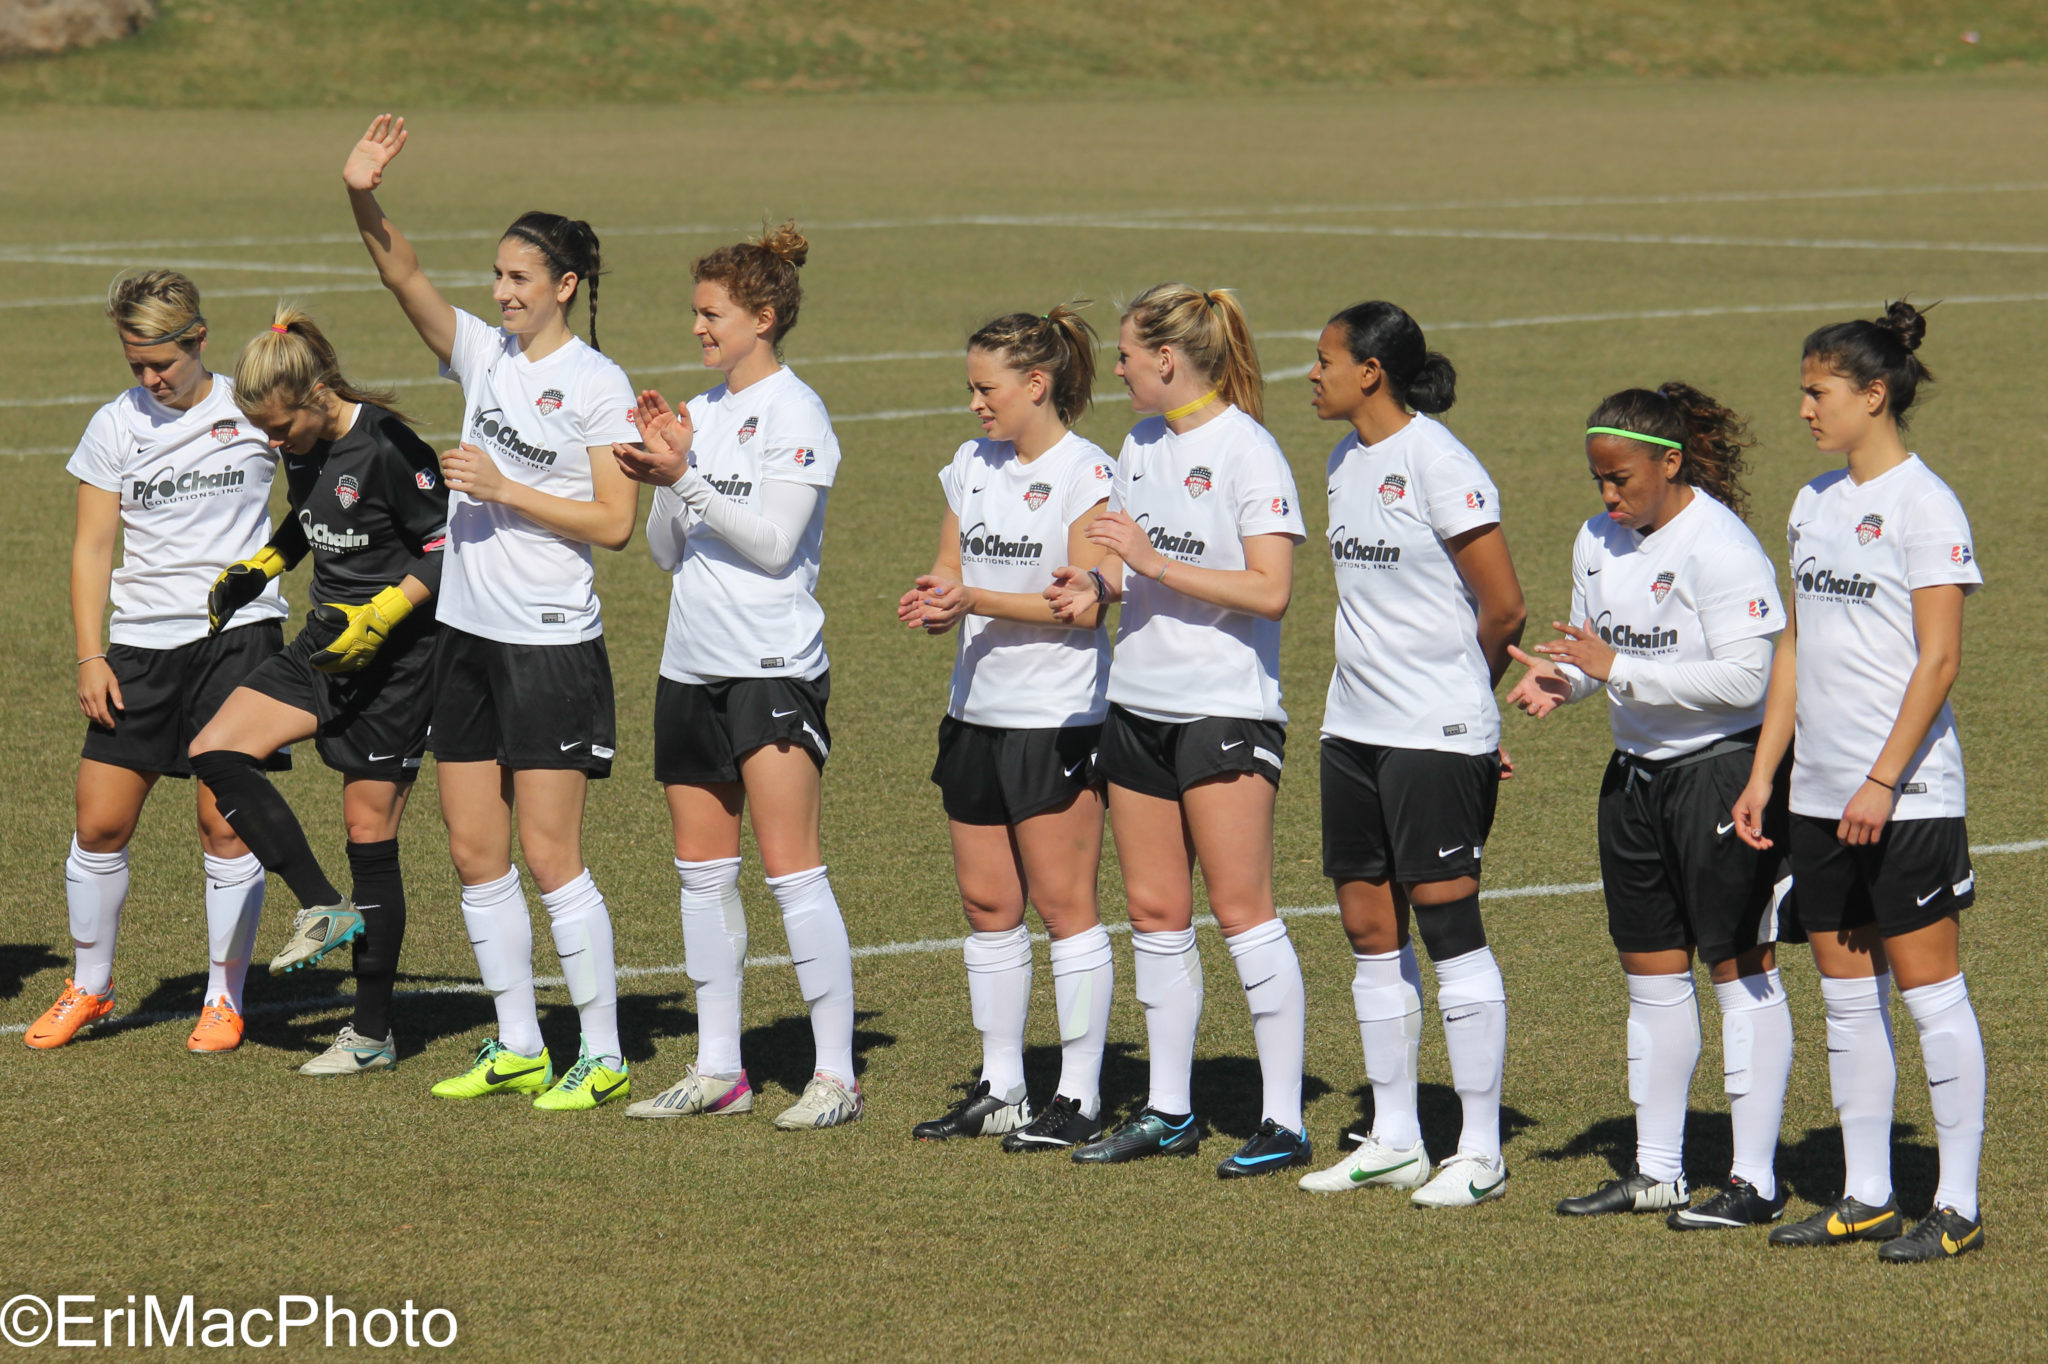 Yael Averbuch (waving) made her first appearance in a Spirit kit during Saturday's intrasquad scrimmage (photo copyright EriMacPhoto for The Equalizer)